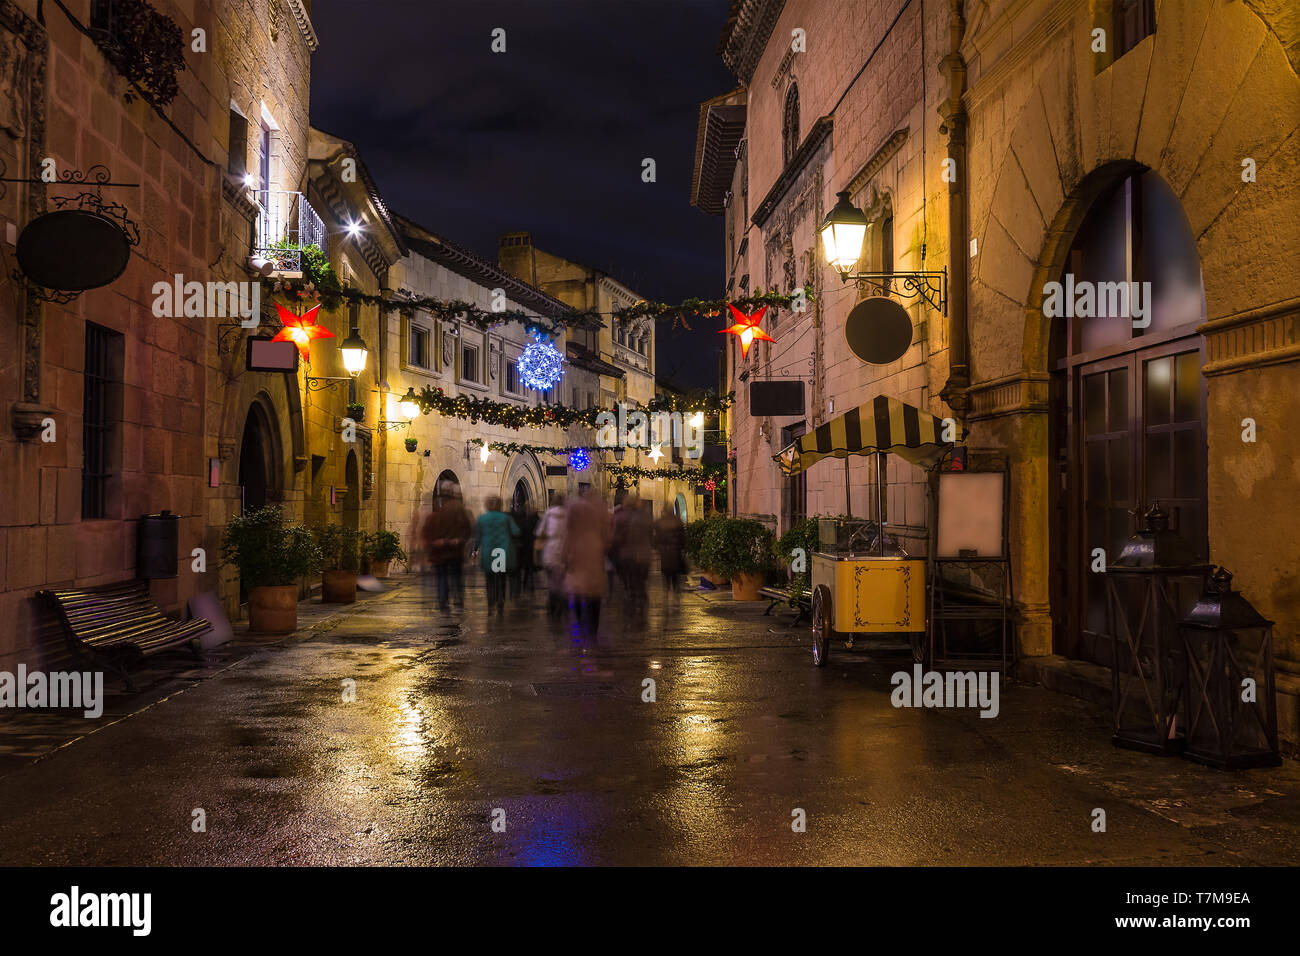 Barcelona, Catalonia, Spain - November 17, 2018: Beautiful night view long-exposure of an illuminated street with motion blurred tourists in the open- Stock Photo